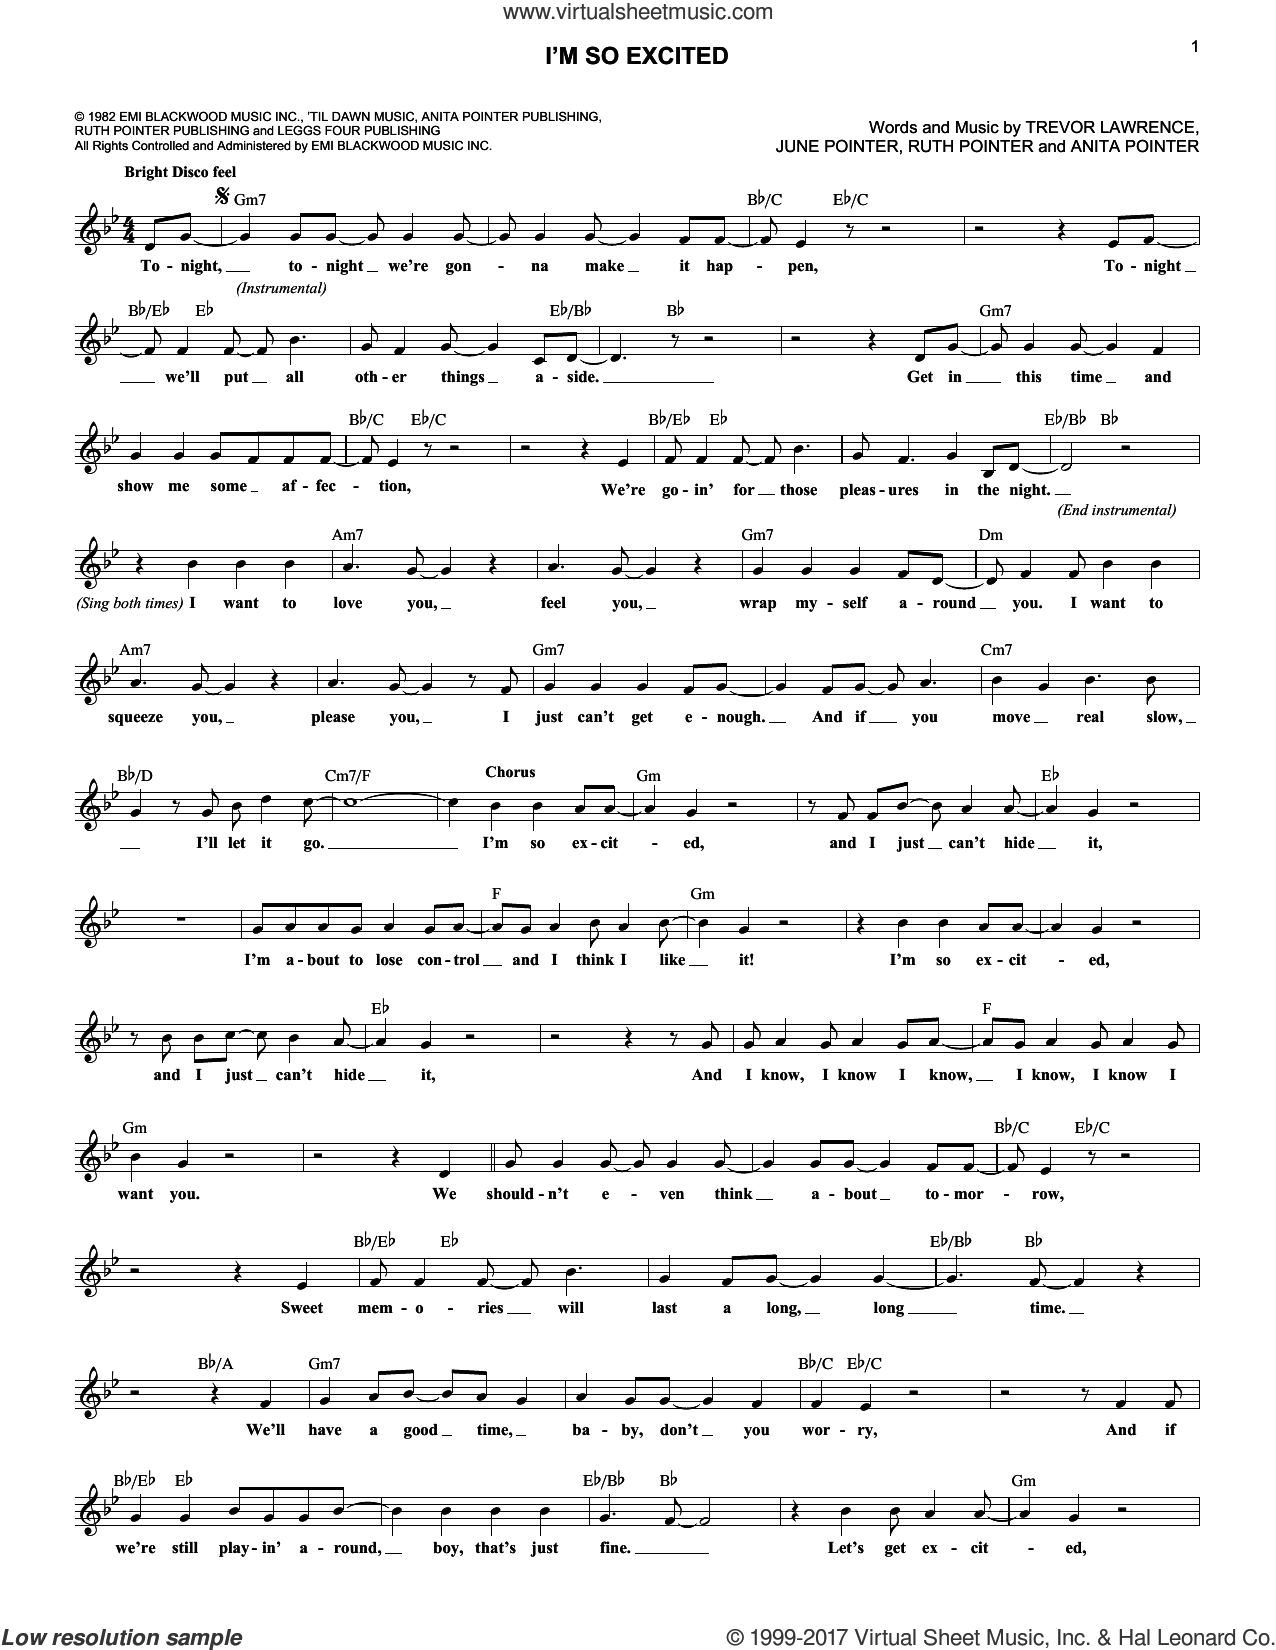 I'm So Excited sheet music for voice and other instruments (fake book) by Ruth Pointer, The Pointer Sisters, Anita Pointer, June Pointer and Trevor Lawrence, intermediate